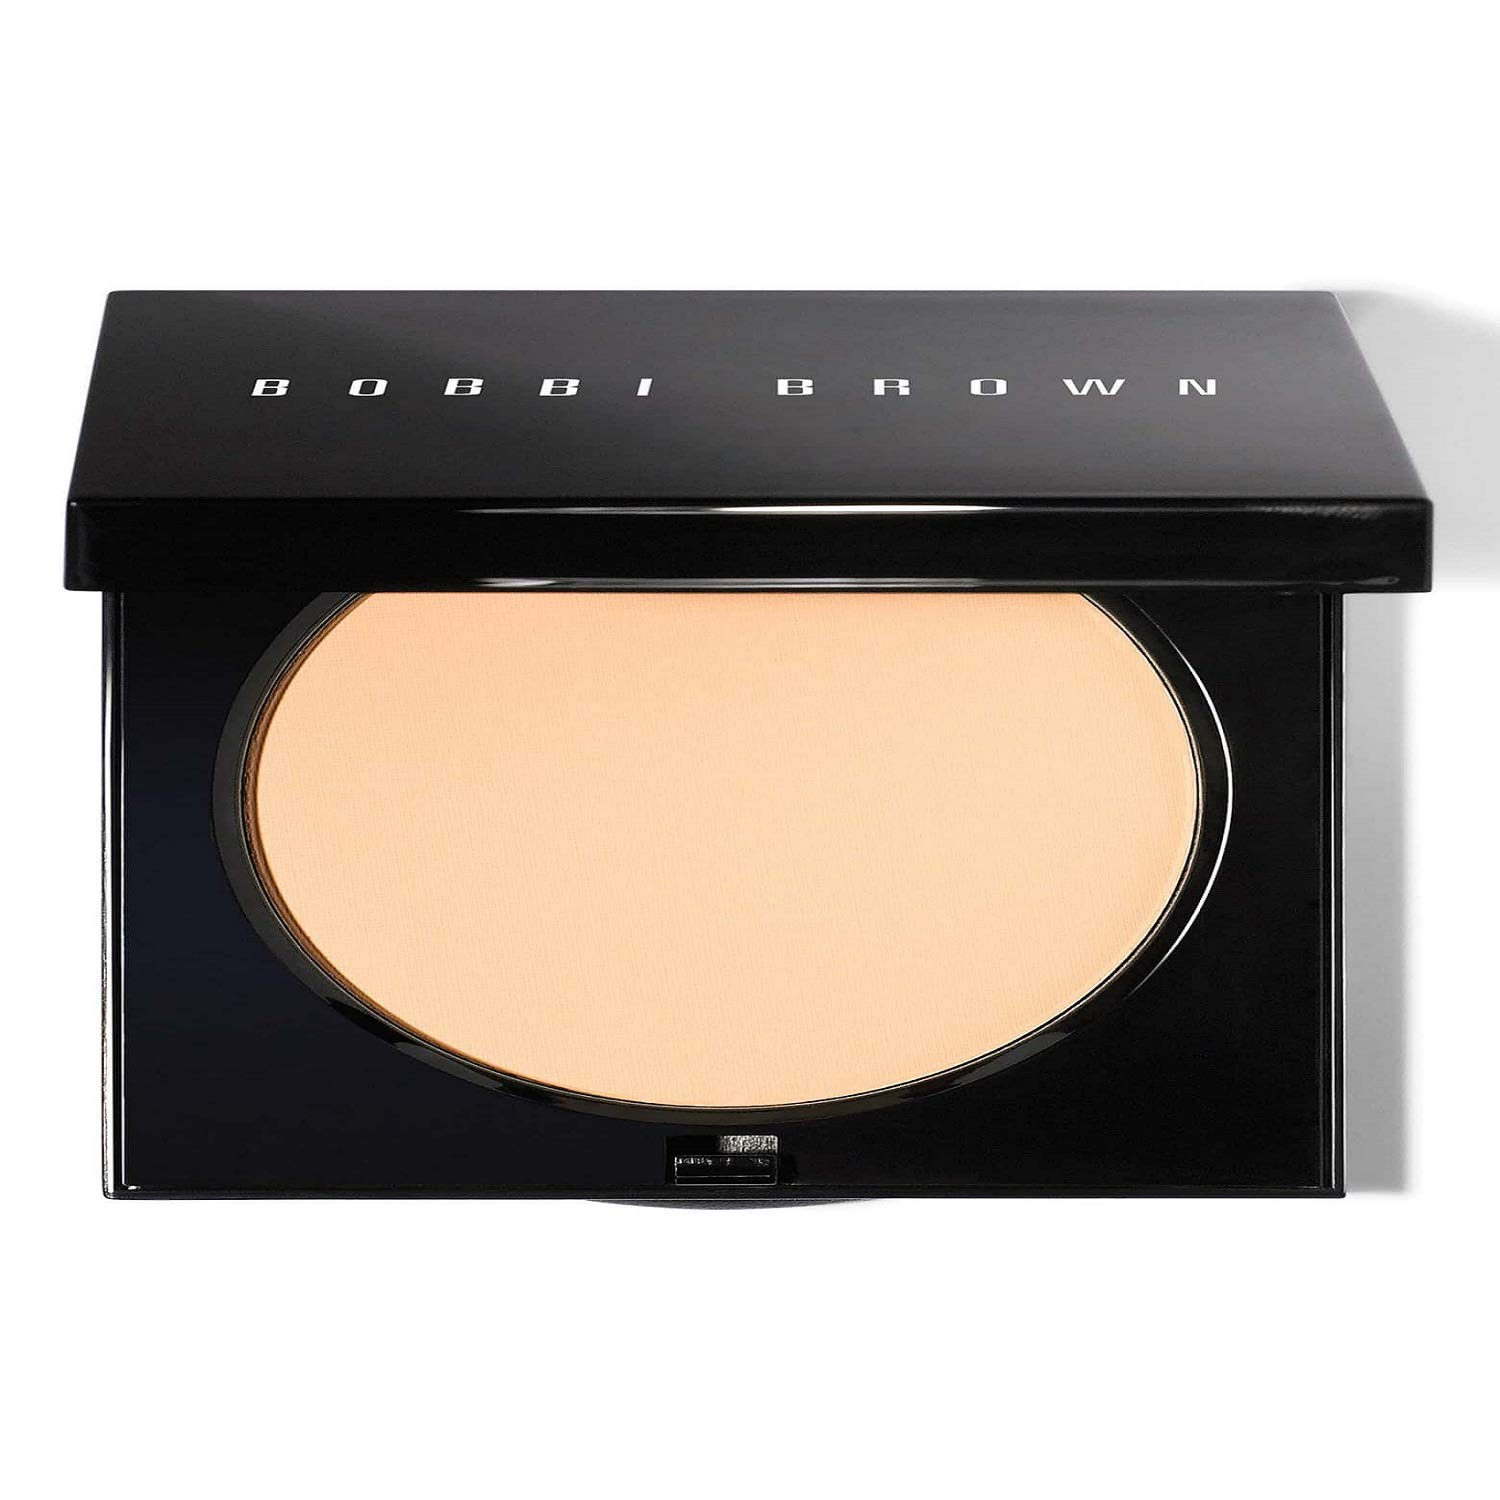 Bobbi Brown Sheer Finish Pressed Powder, No. 05 Soft Sand, 0.38 Ounce